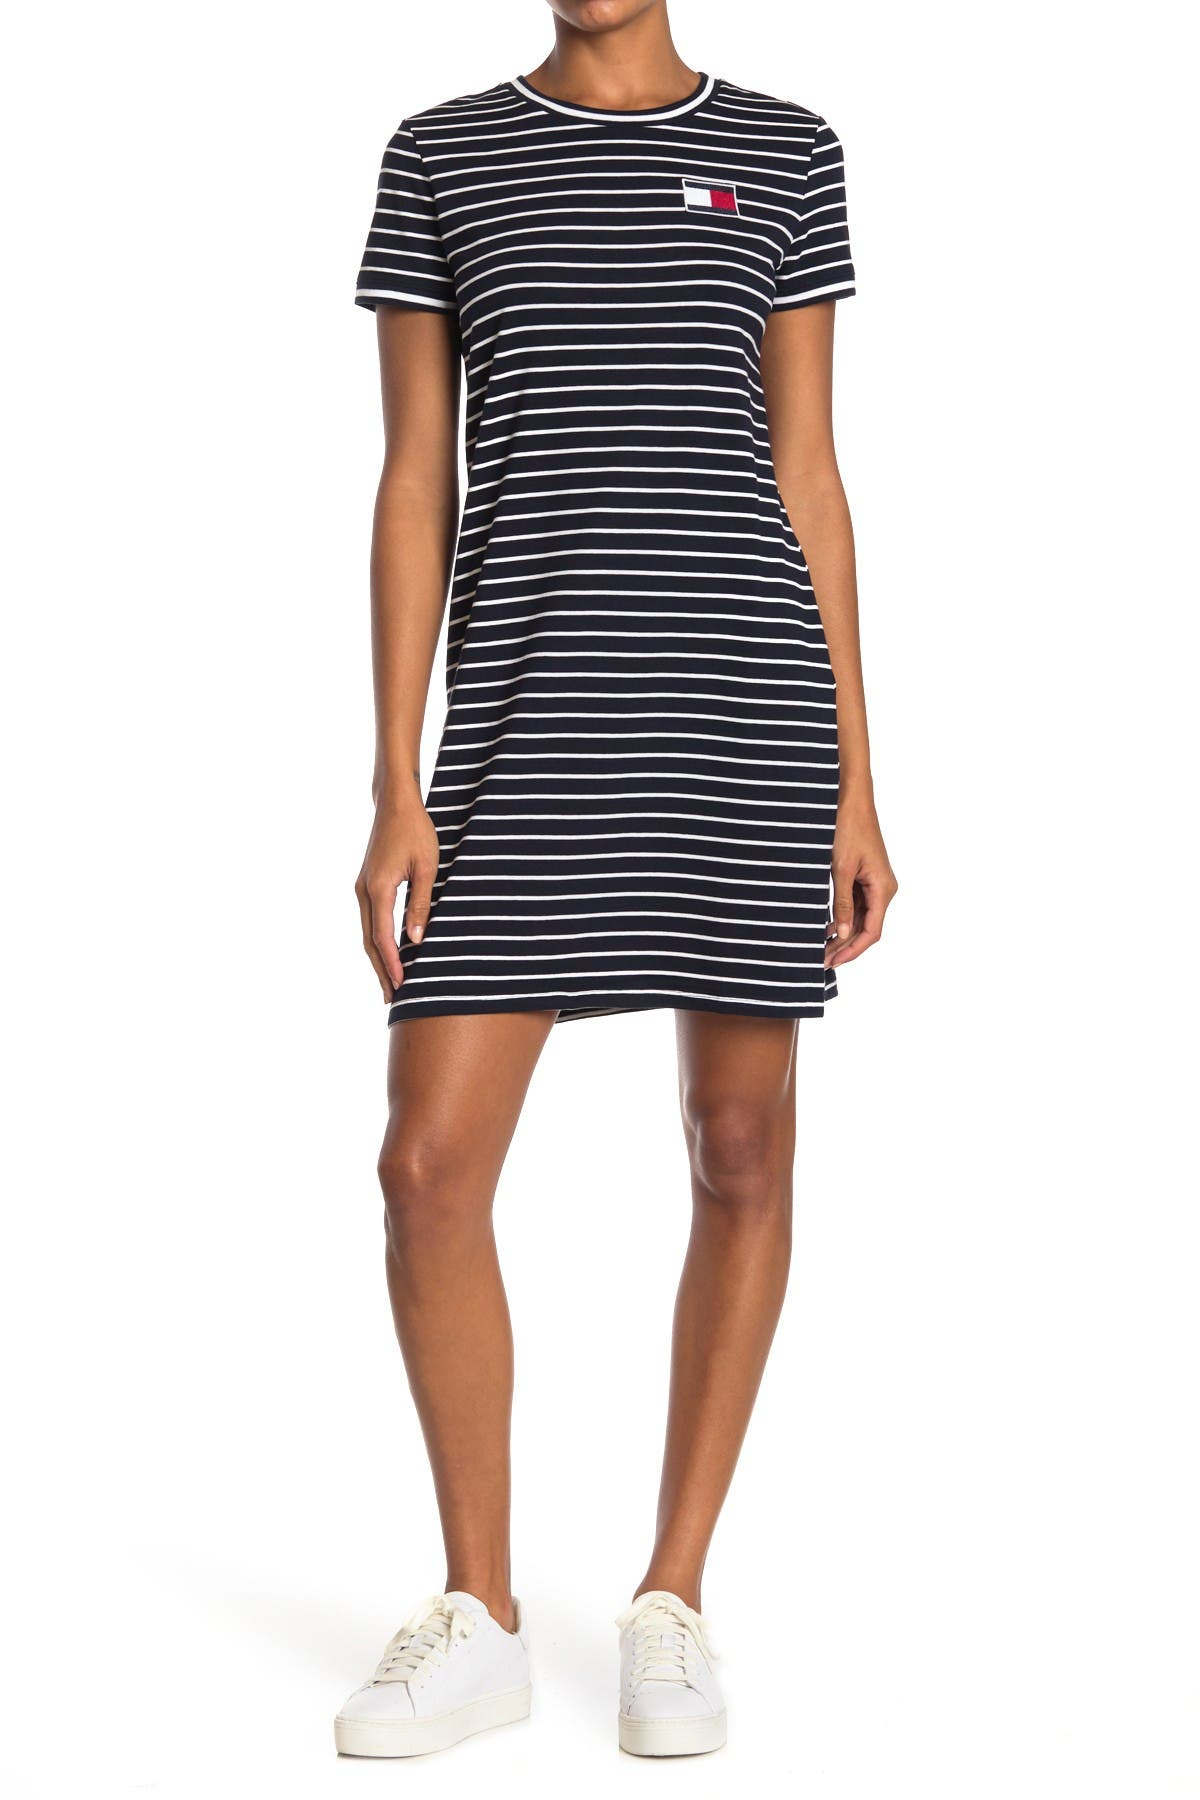 Image of Tommy Hilfiger Striped Crew Neck T-Shirt Dress